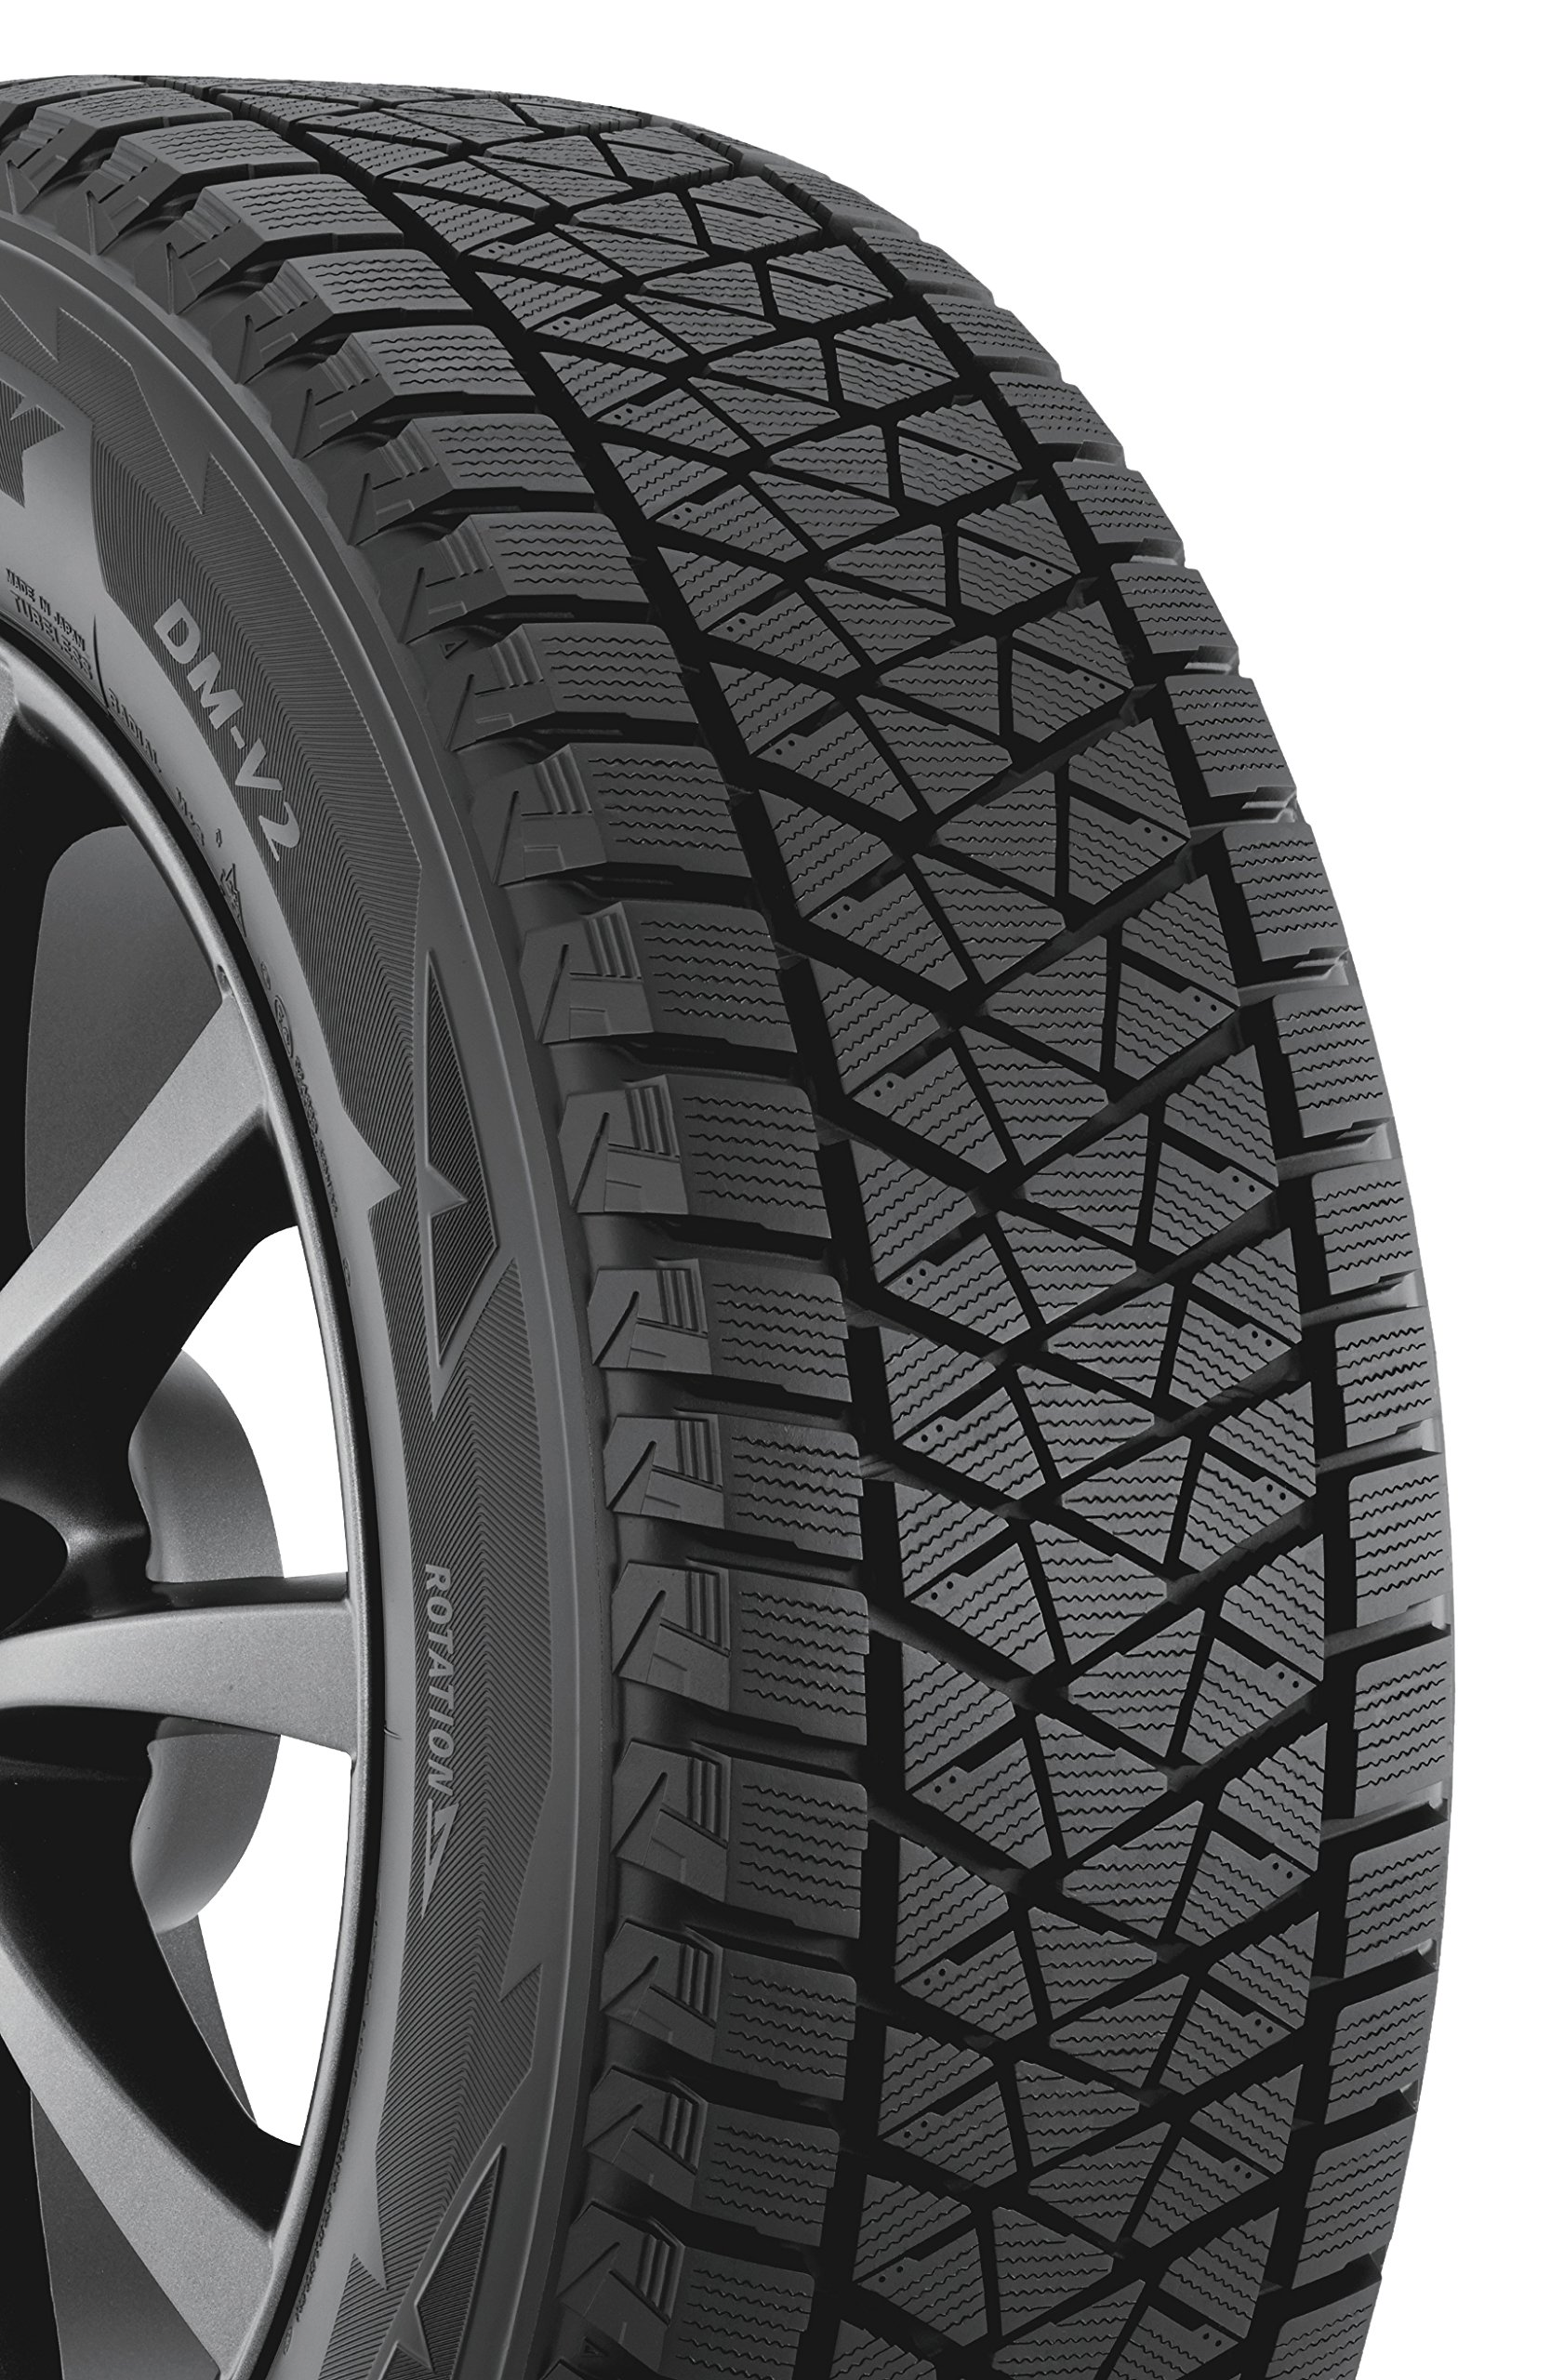 Bridgestone BLIZZAK DM-V2 Winter Radial Tire - 275/55R20 117T